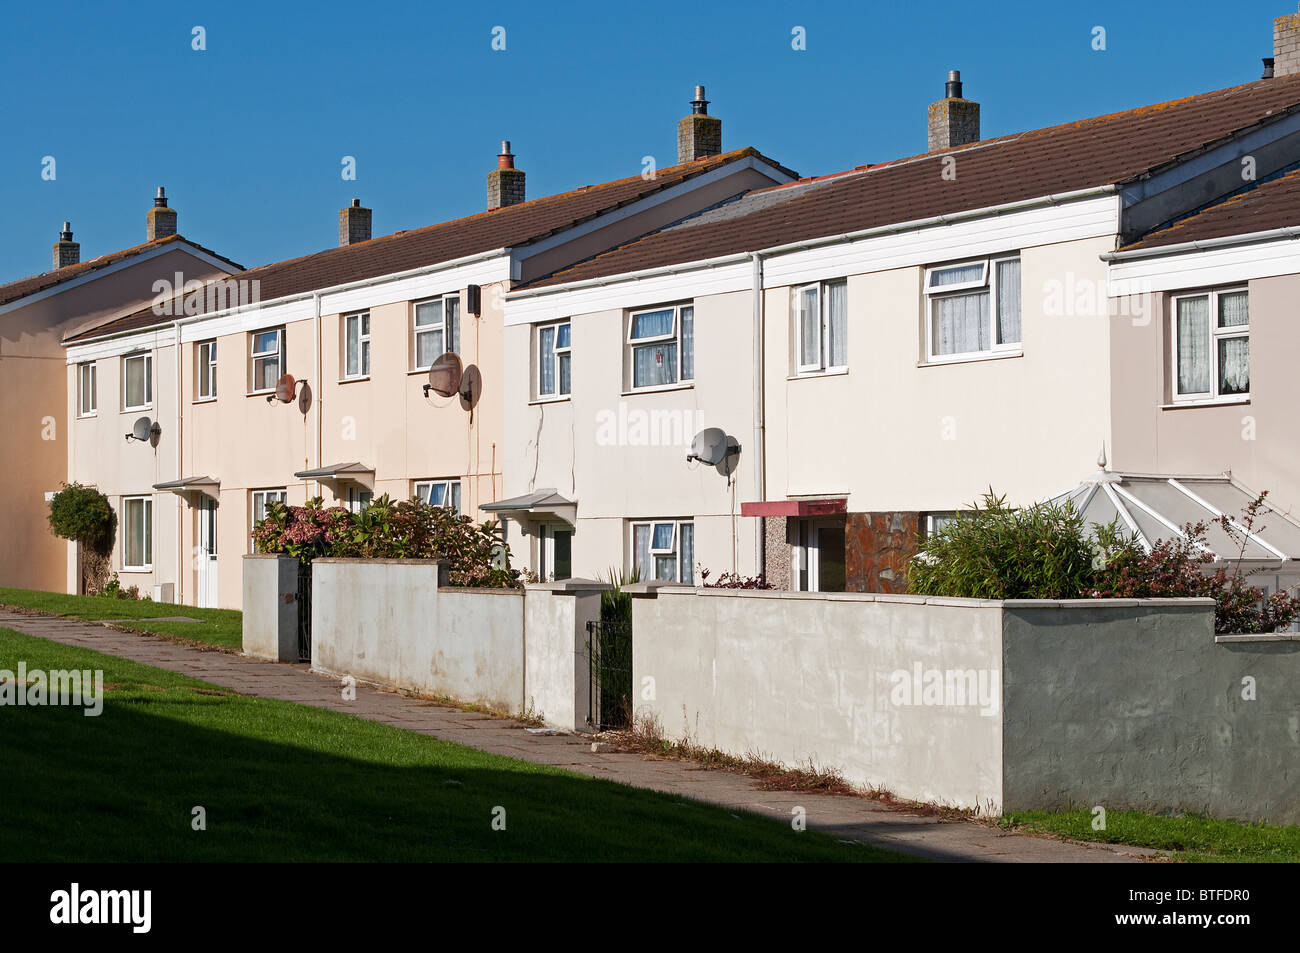 Council houses in Kirkby near Liverpool, UK Stock Photo